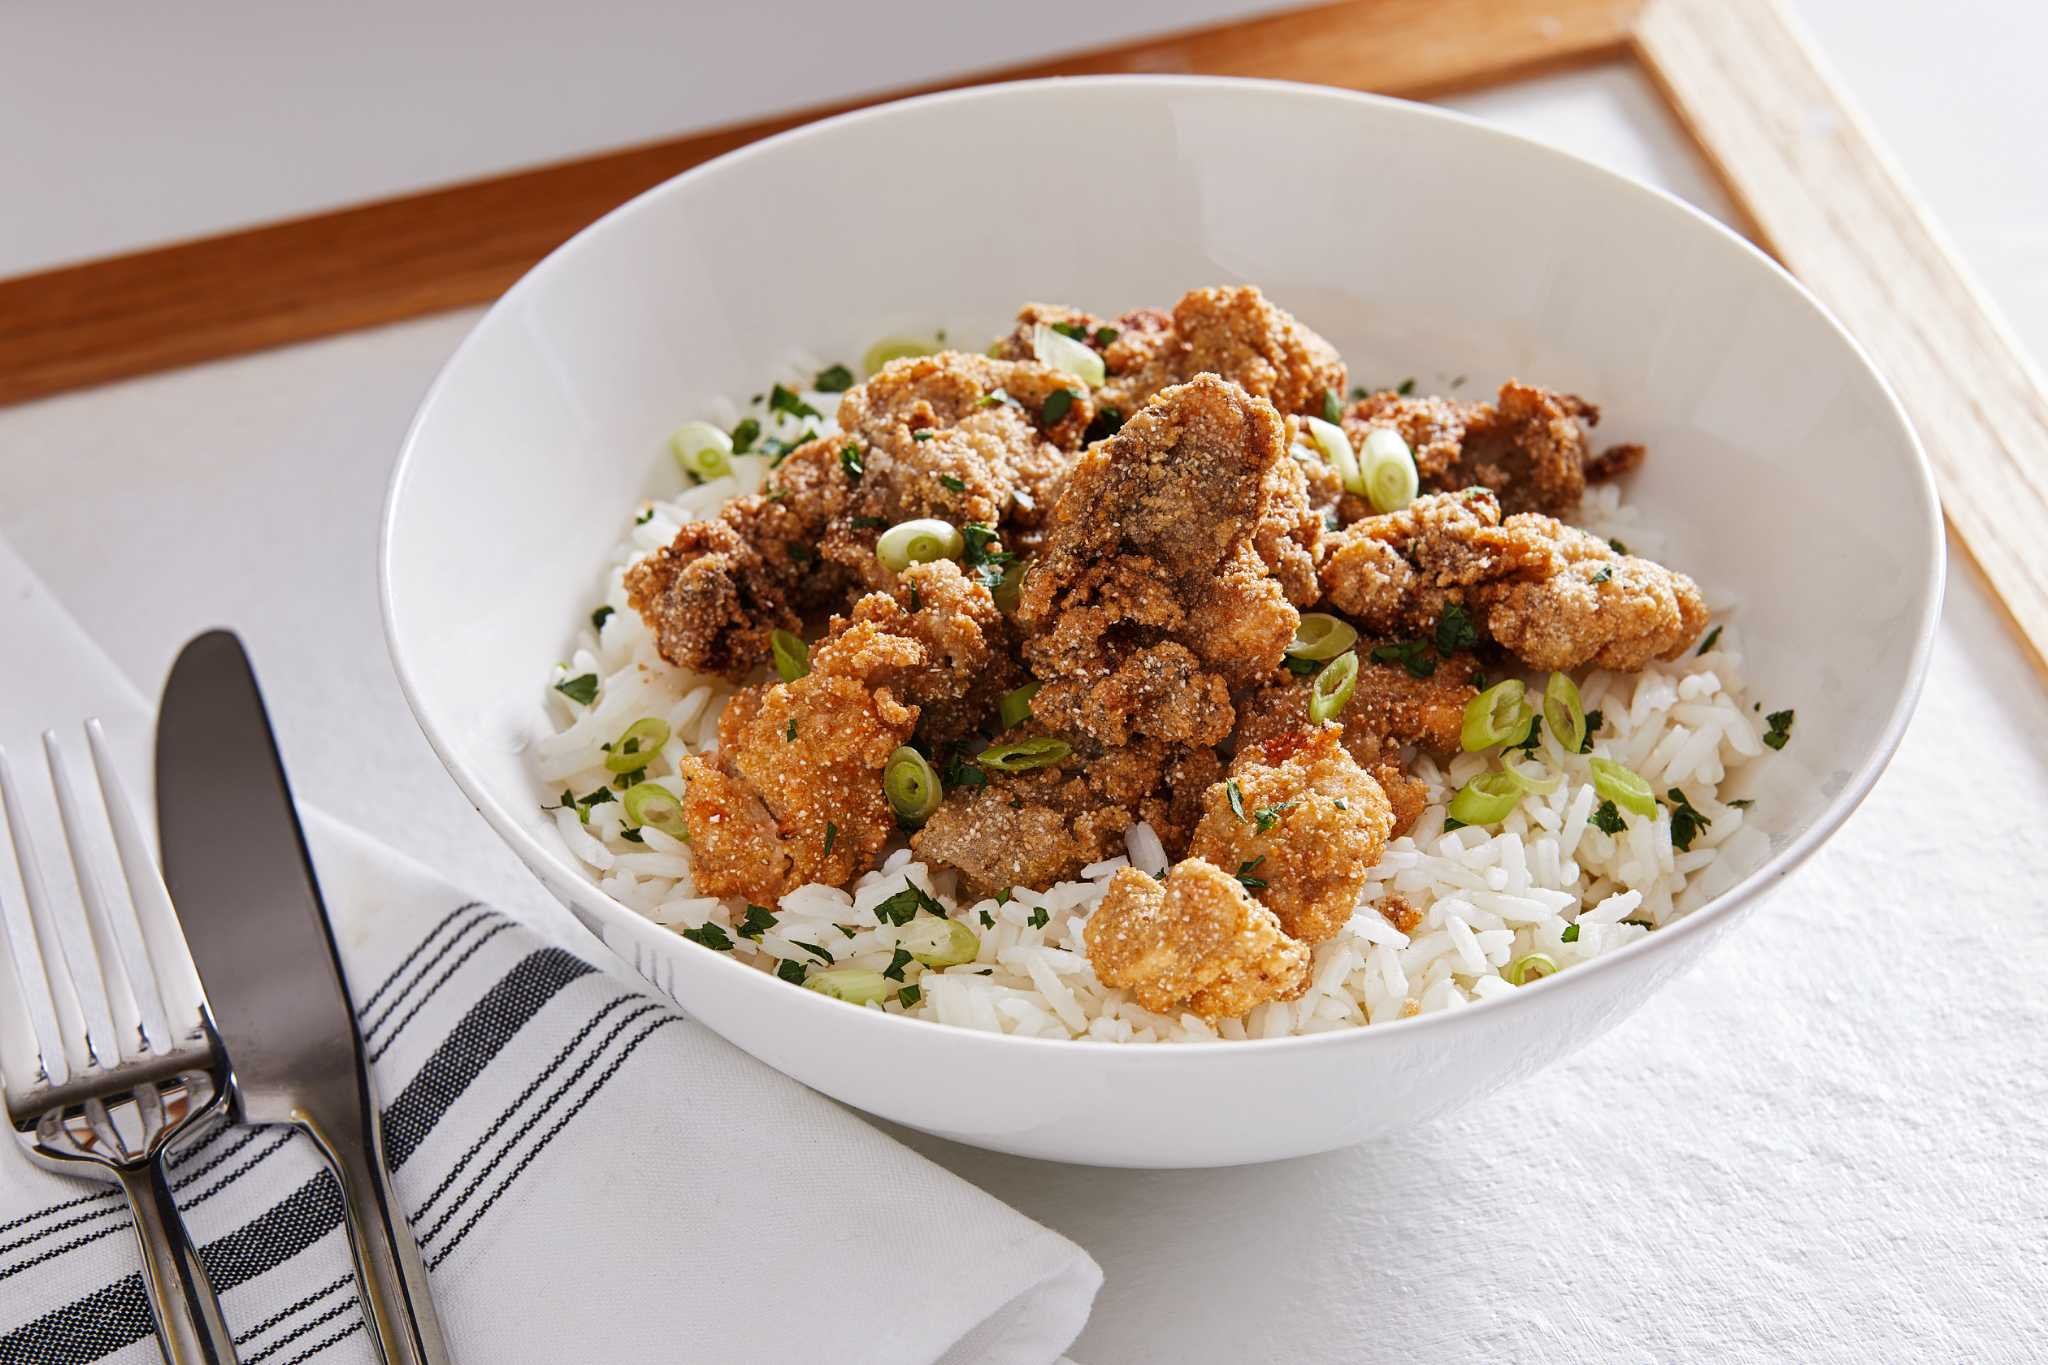 The secret to superior fried oysters: Listen closely